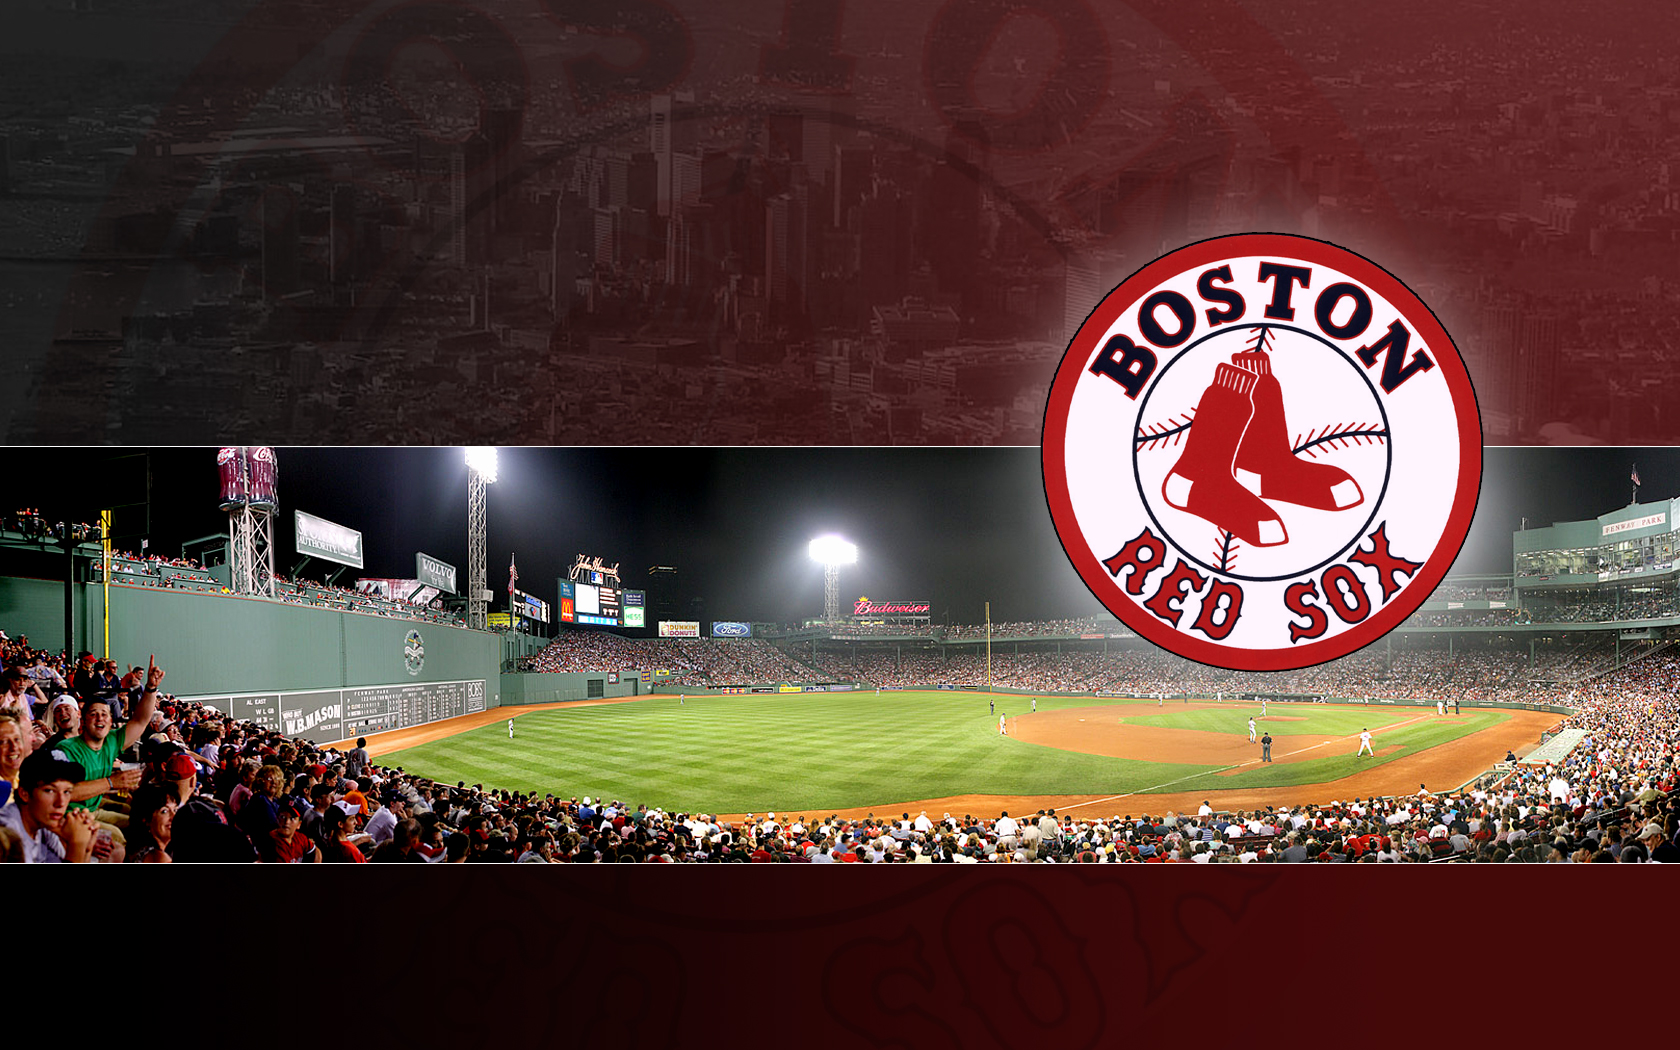 Boston Red Sox Wallpapers and Background Images   stmednet 1680x1050